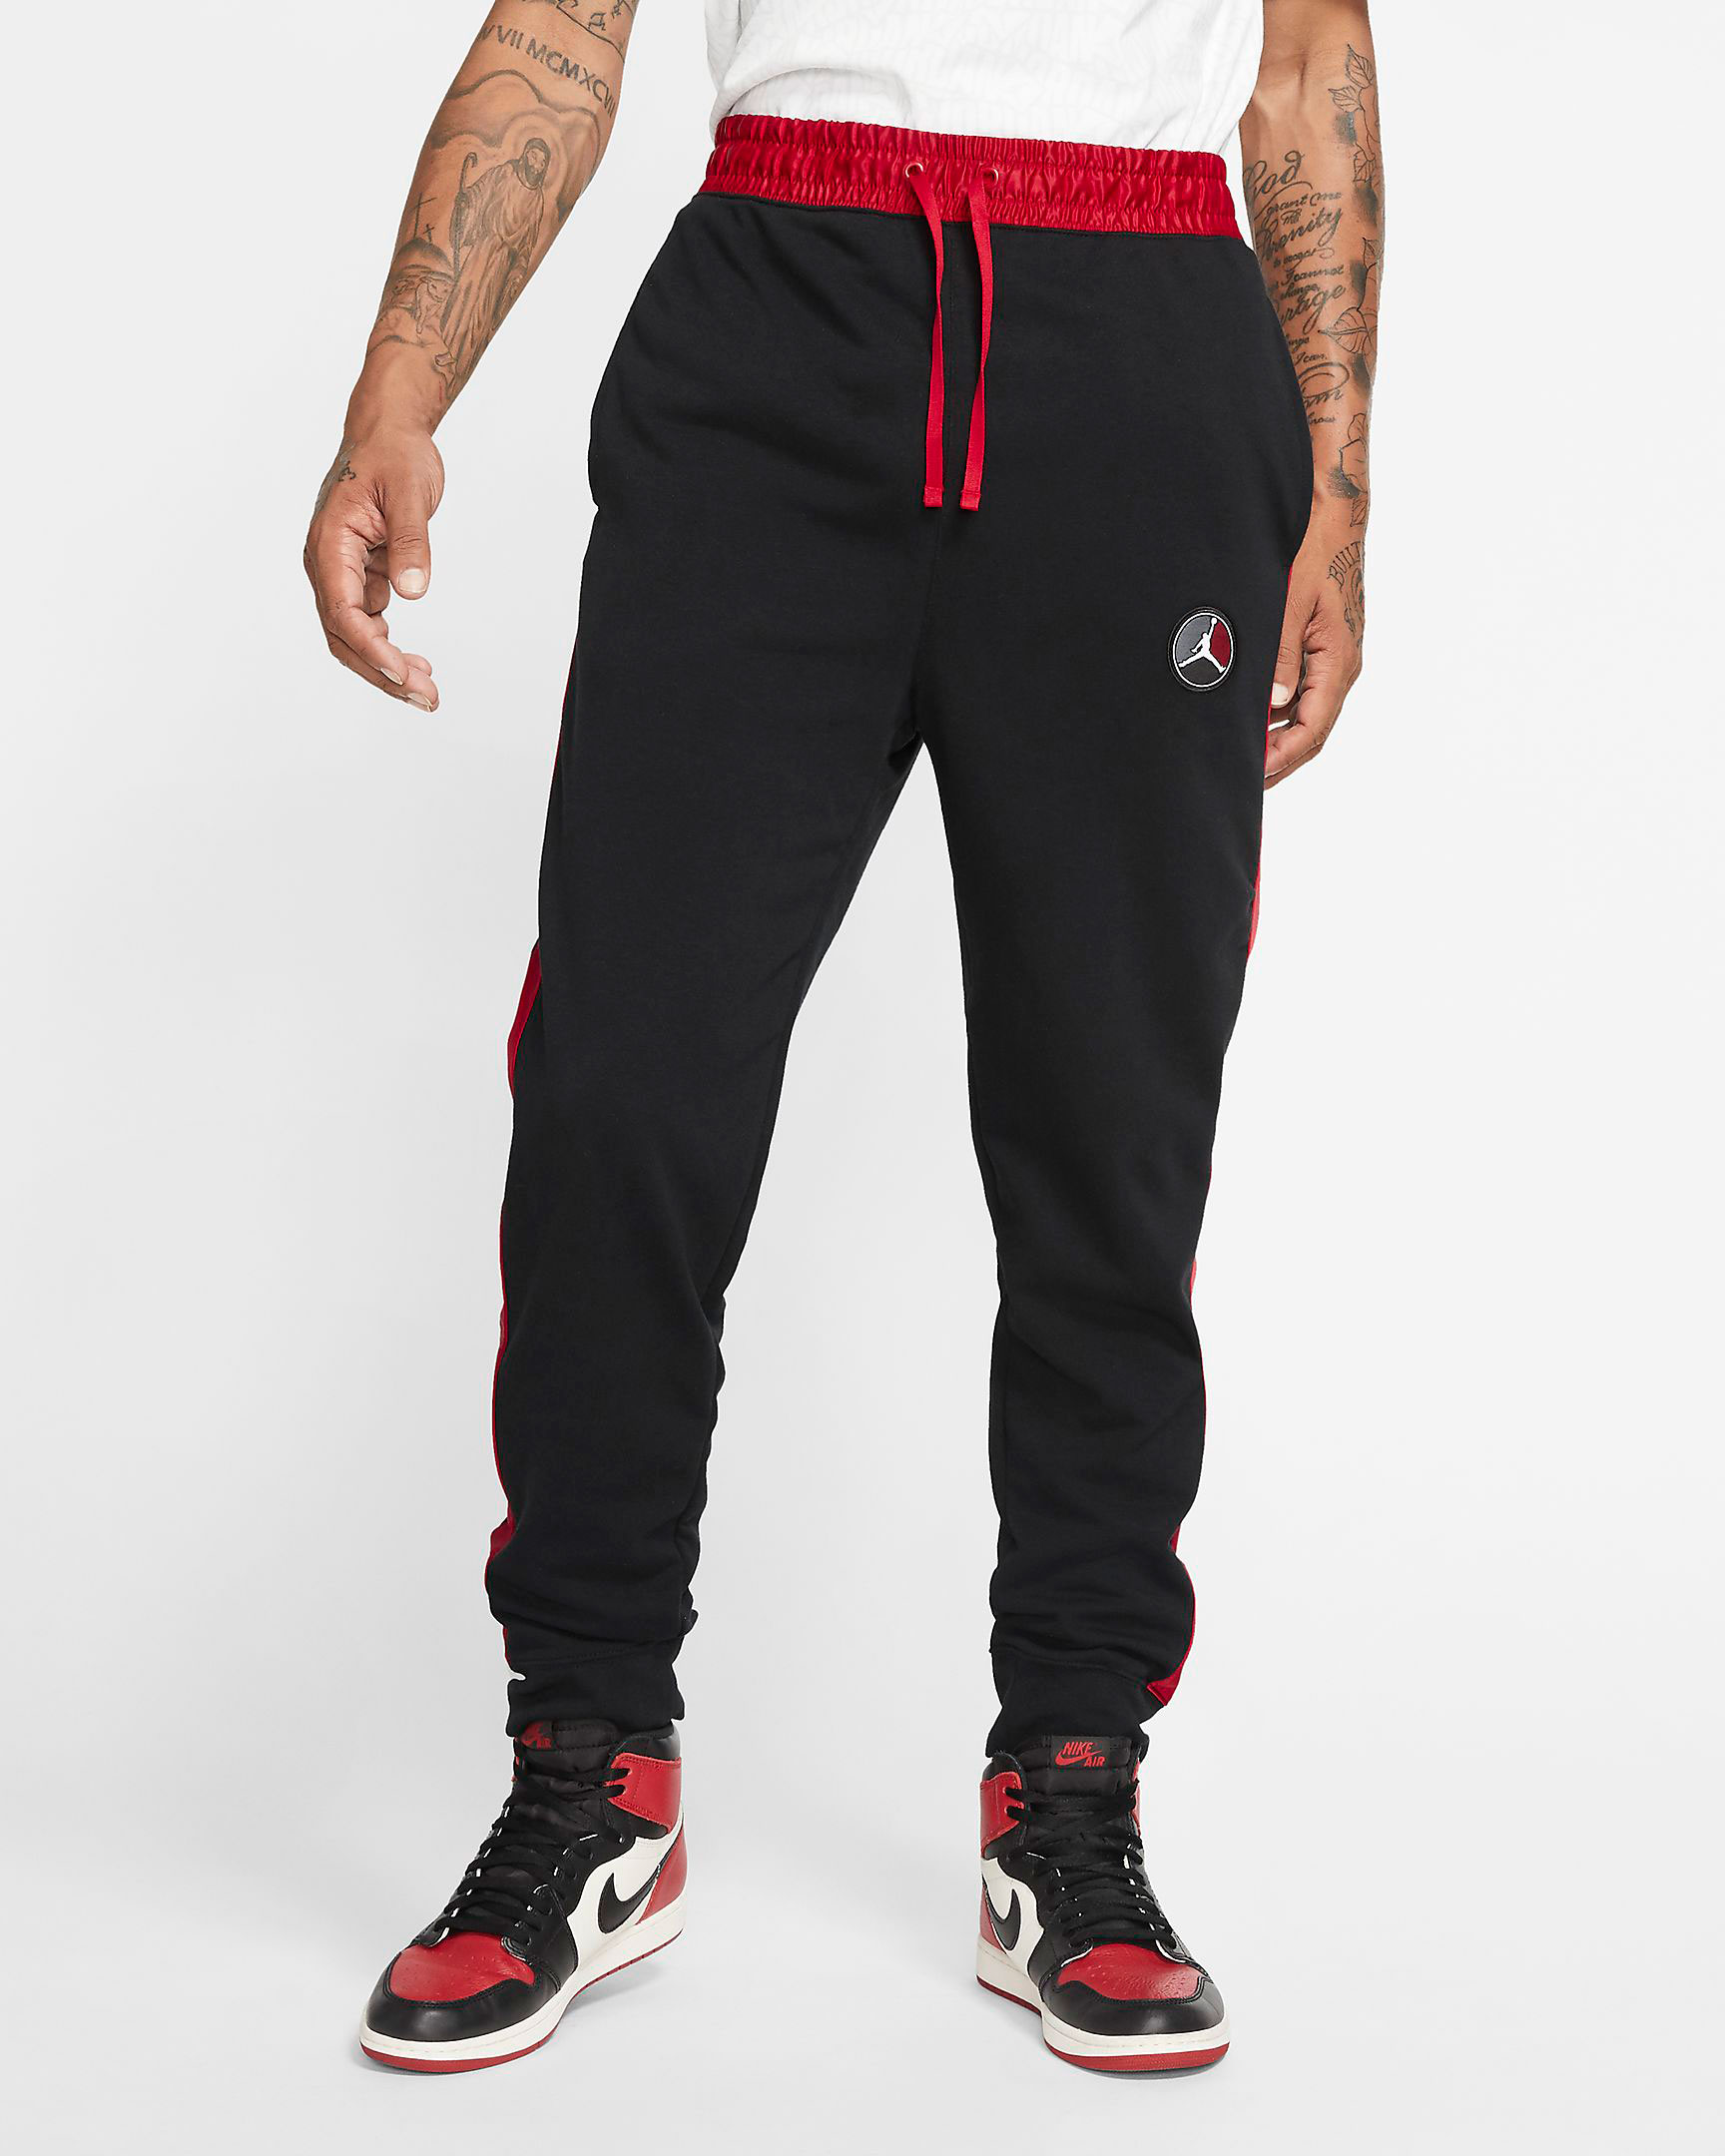 jordan-remastered-pants-black-red-1